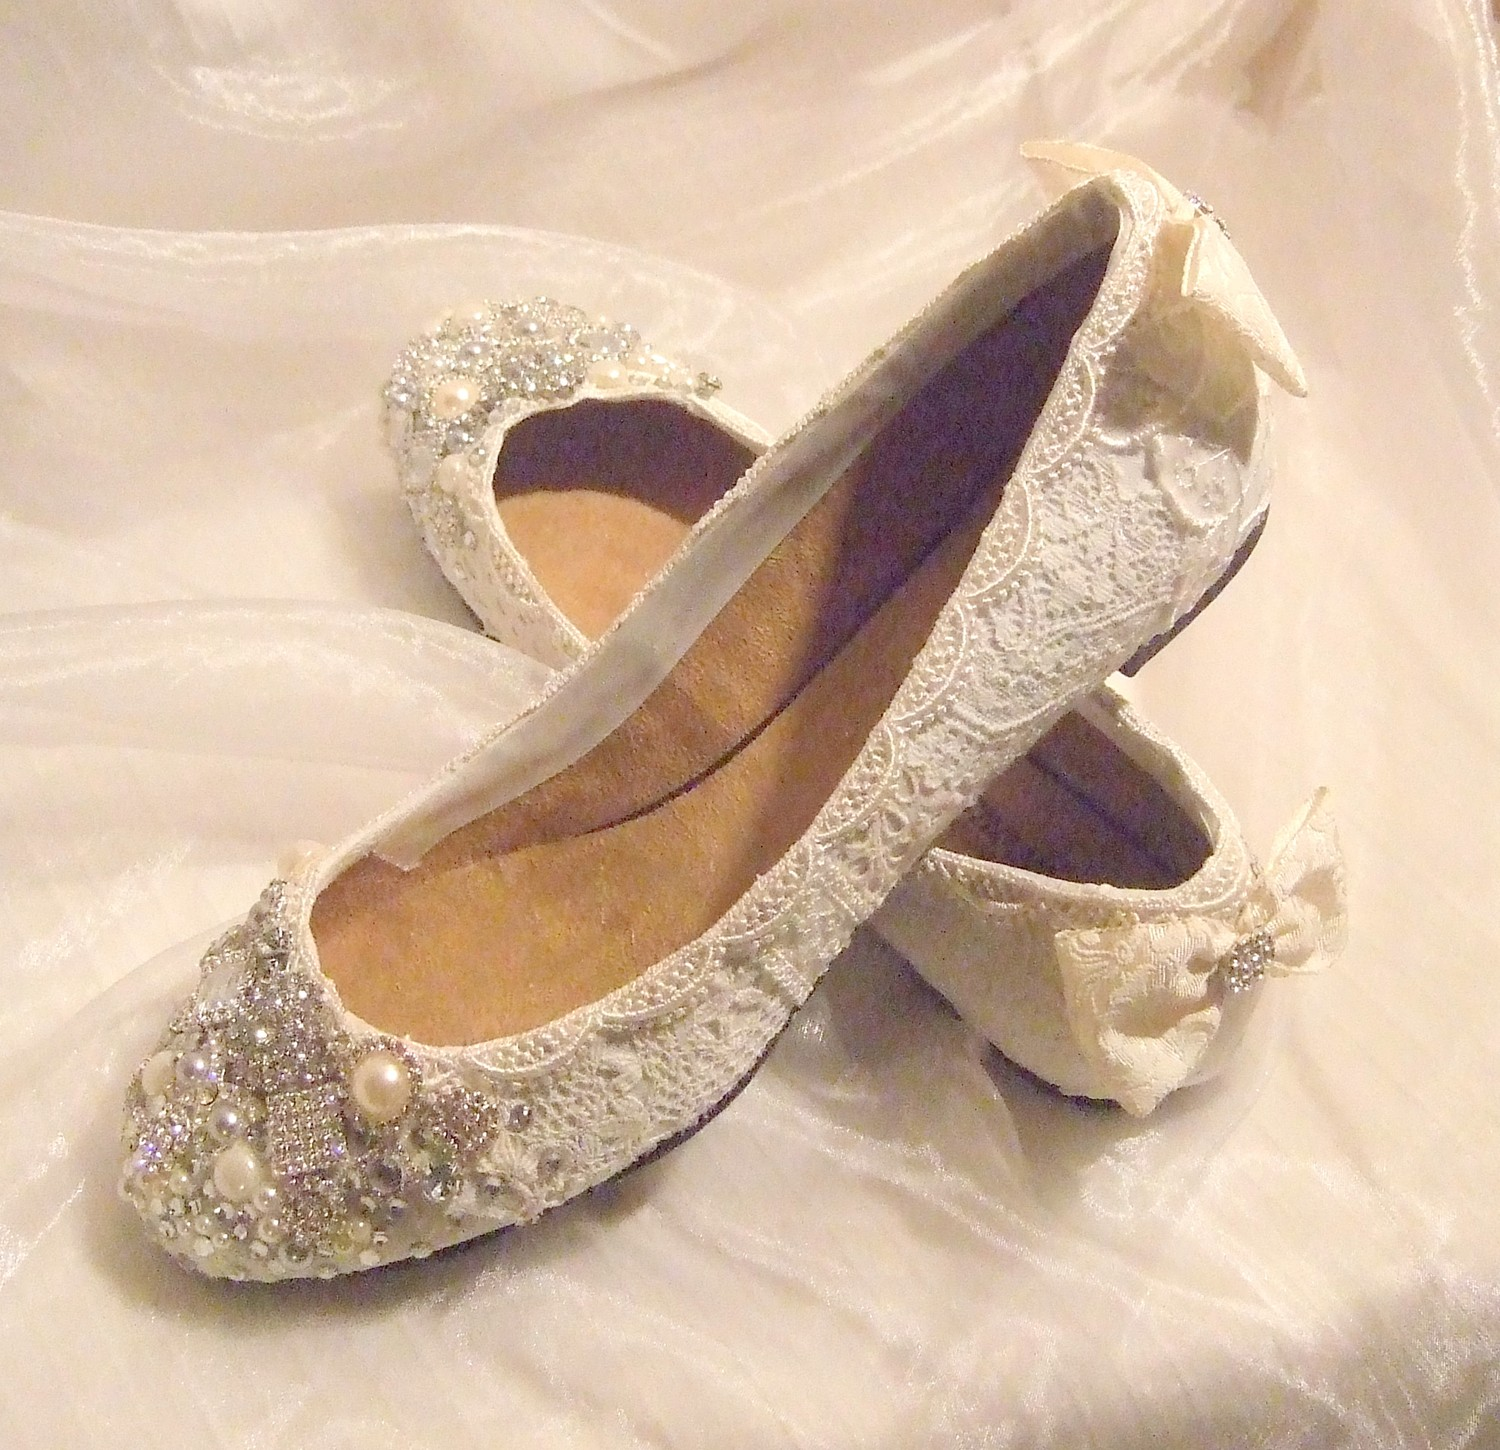 Slippers: ALL NEW SLIPPERS FOR WEDDING RECEPTION